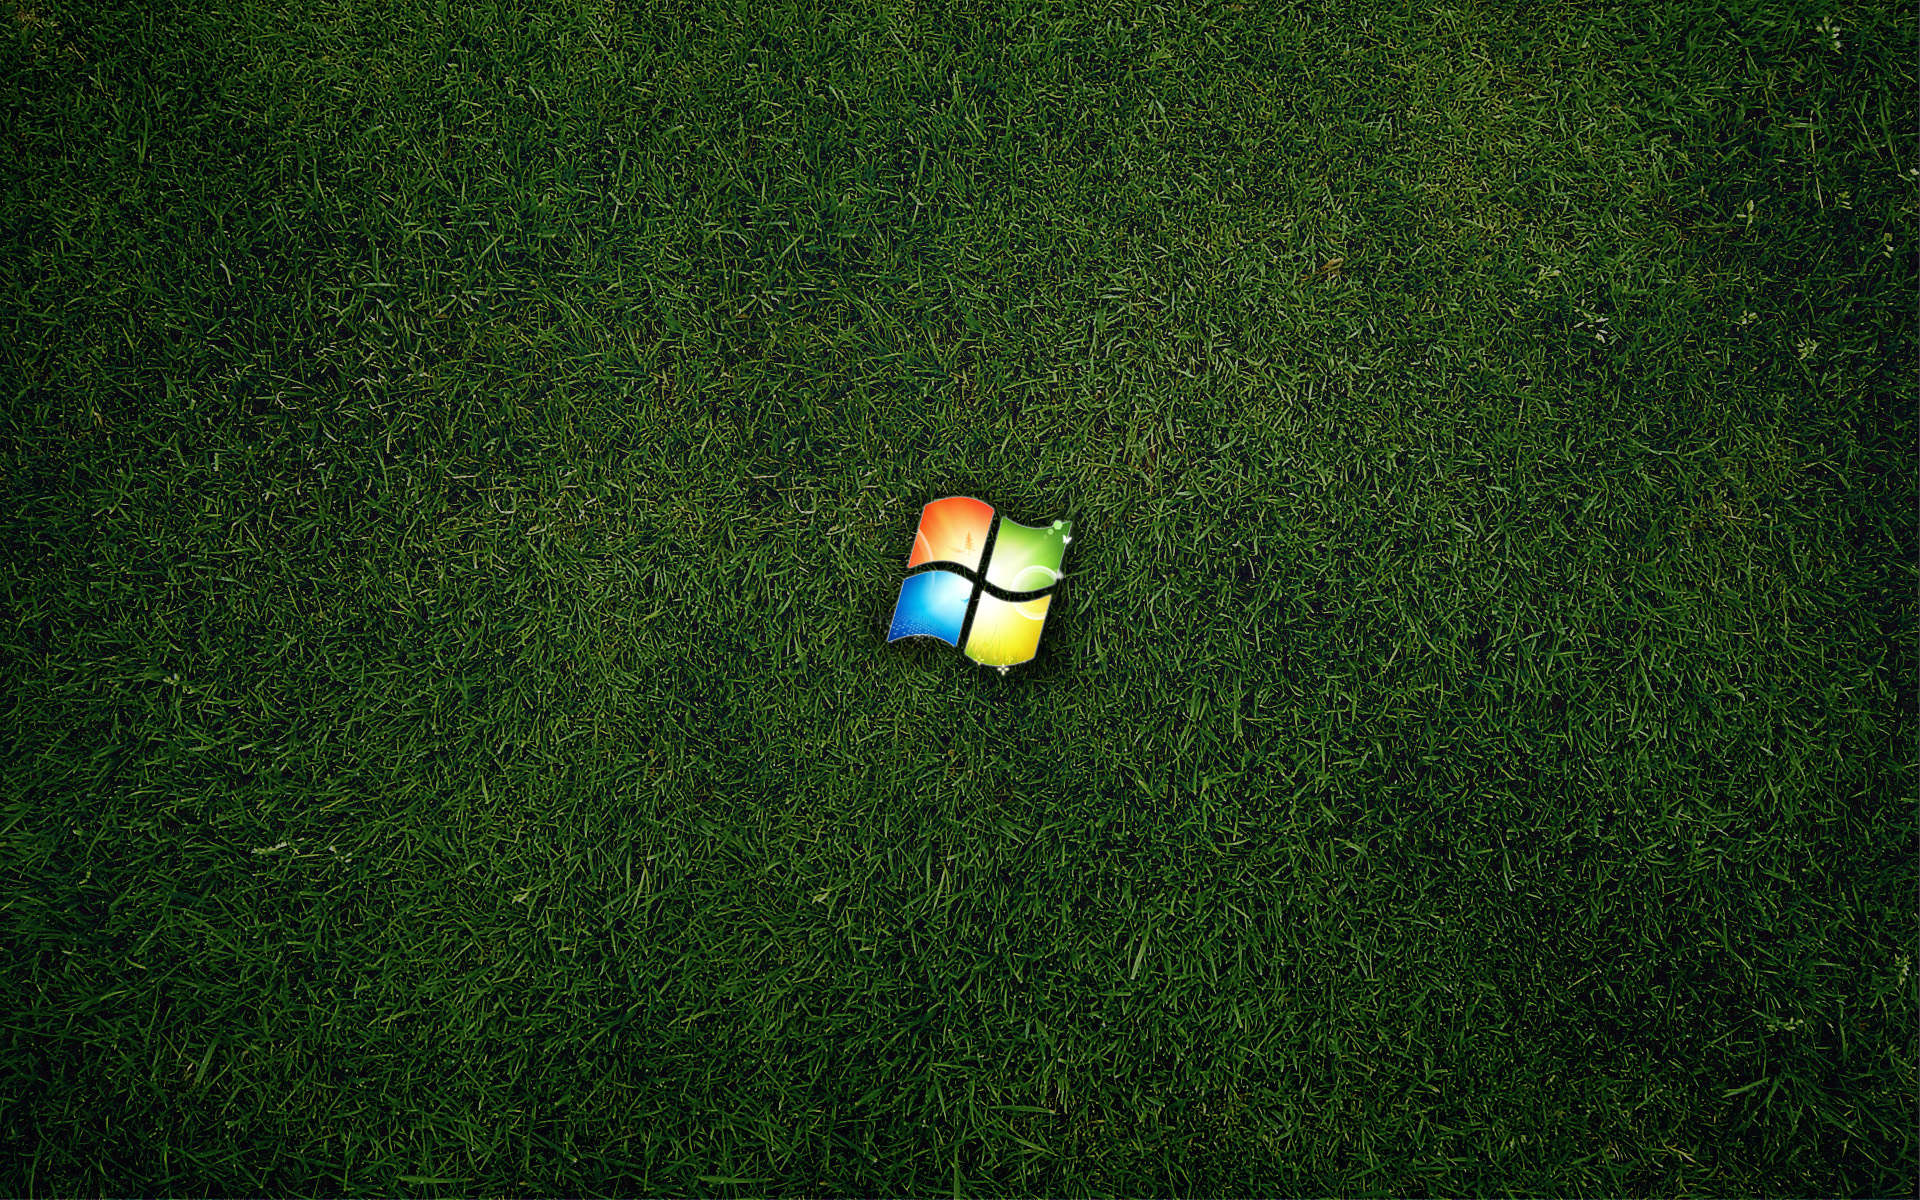 Windows Wallpaper Grass Wallpapersafari